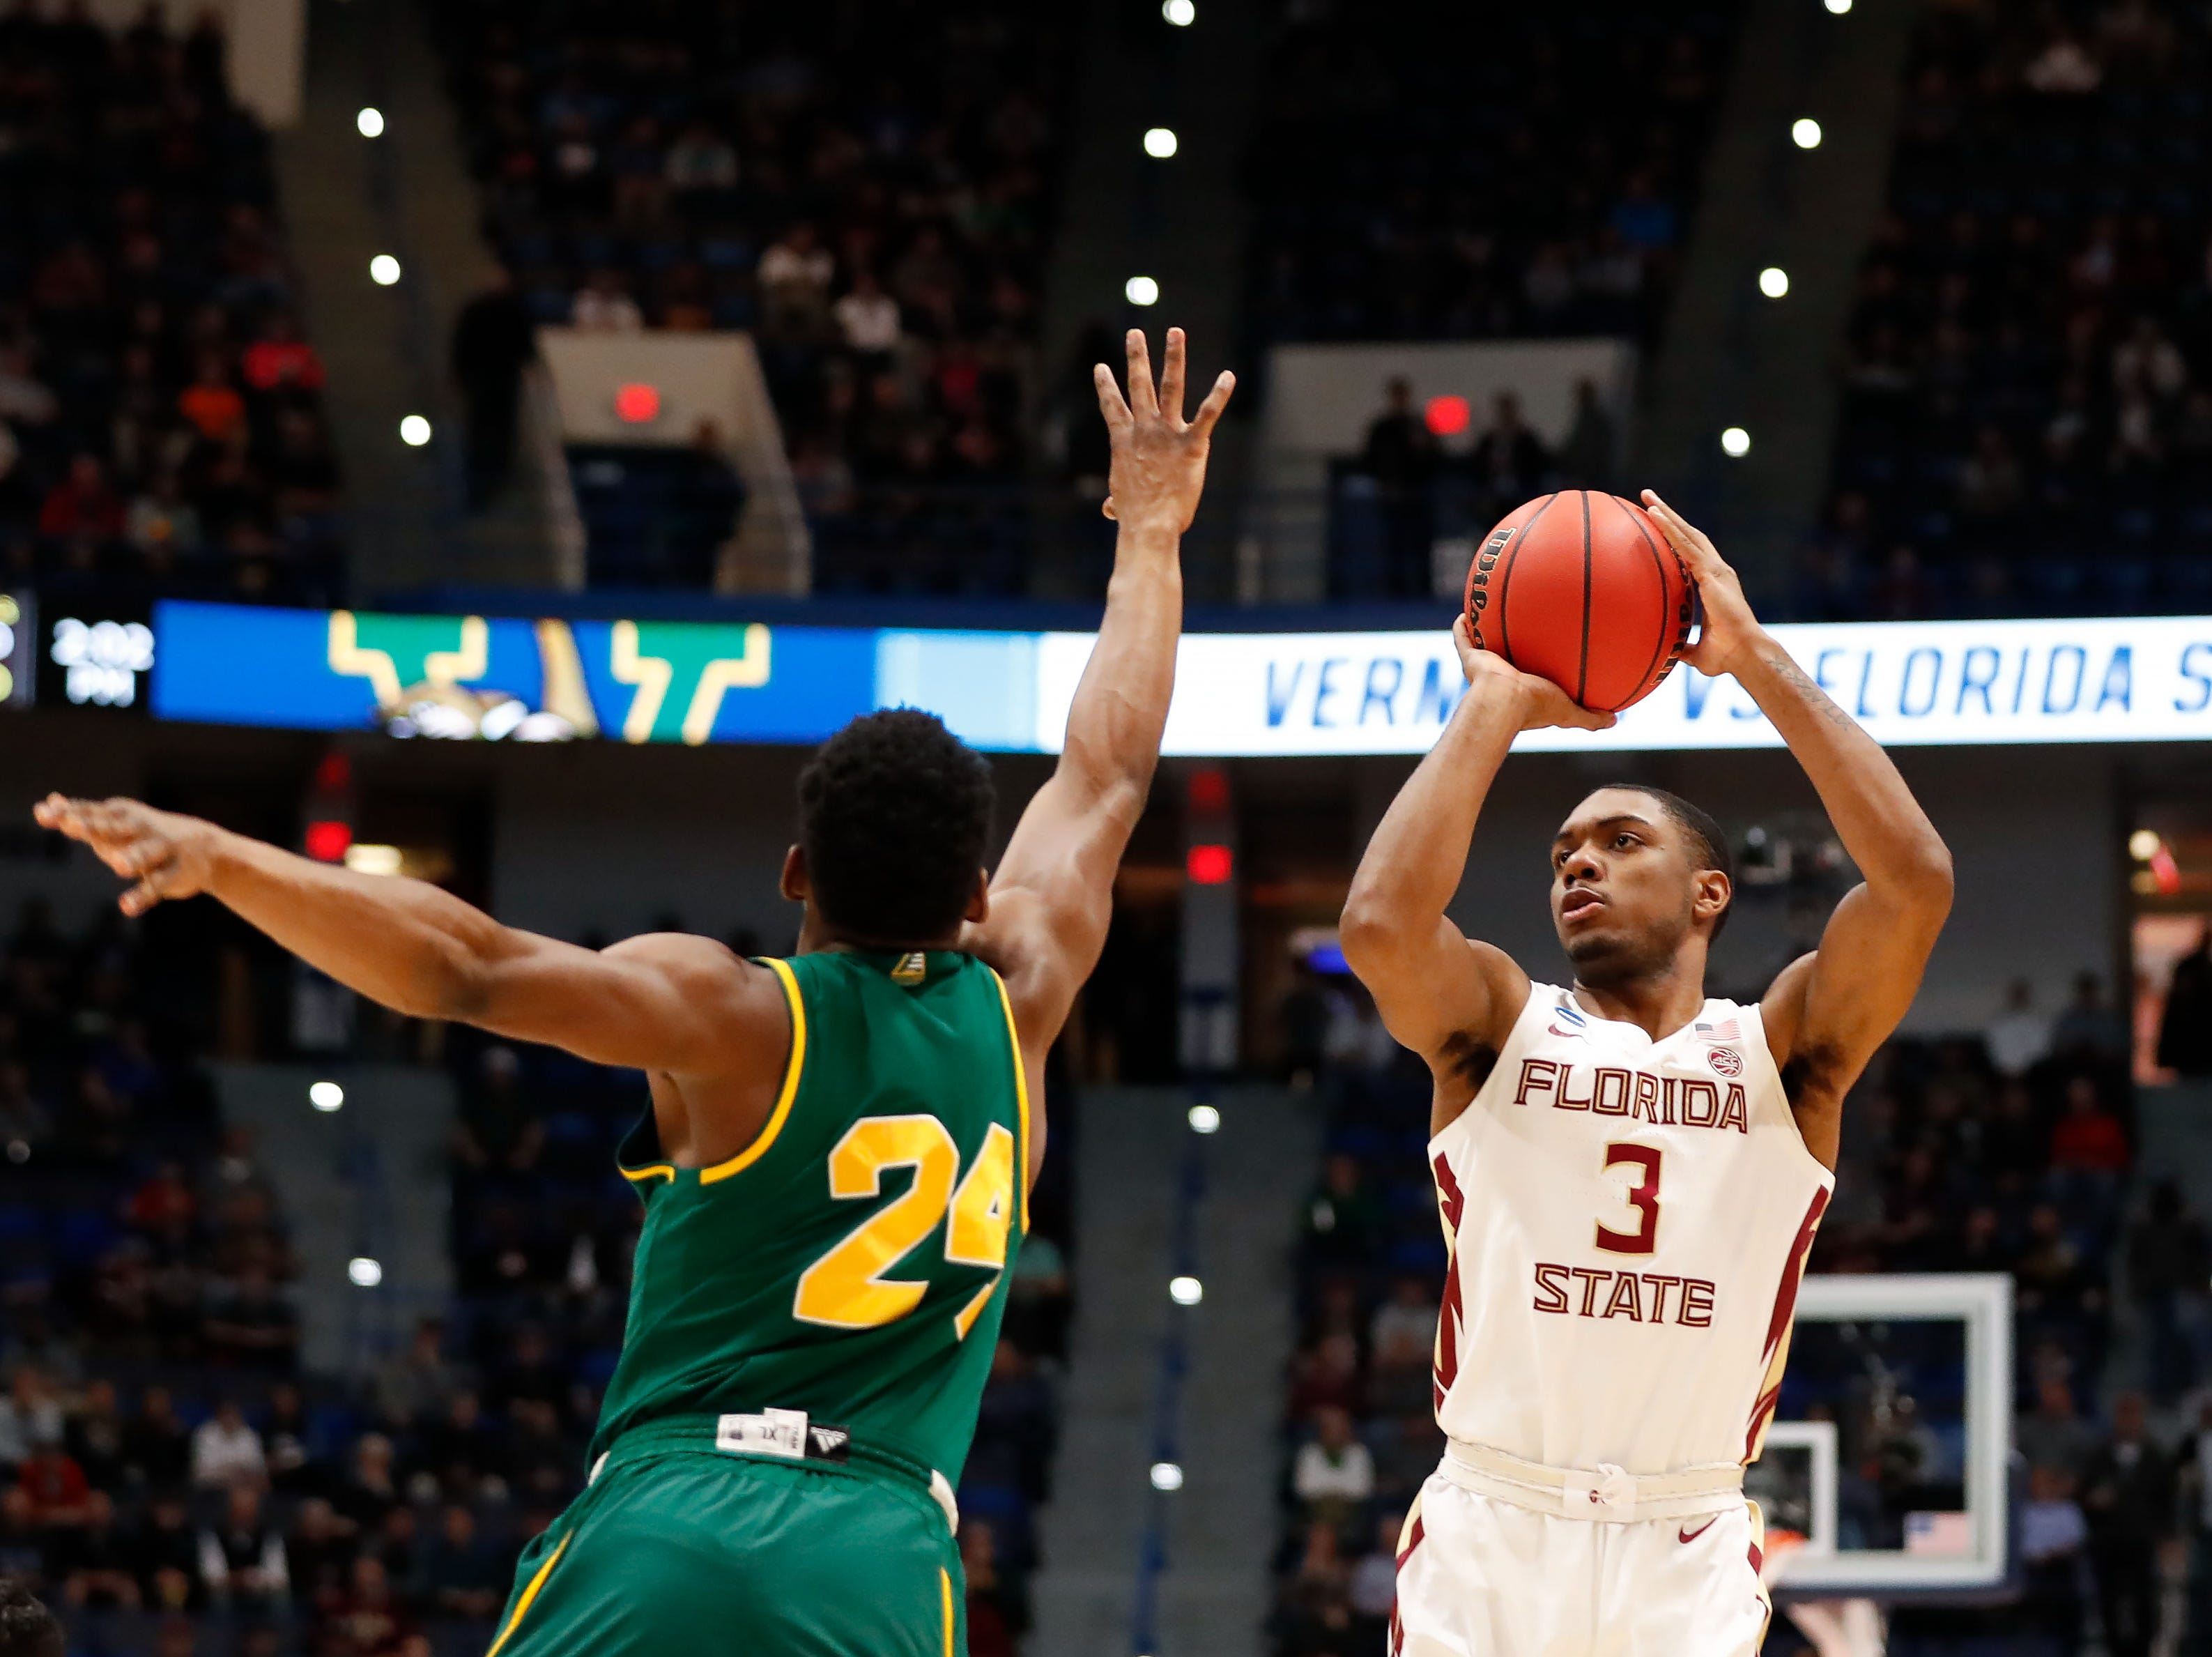 Mar 21, 2019; Hartford, CT, USA; Florida State Seminoles guard Trent Forrest (3) attempts a shot over Vermont Catamounts guard Ben Shungu (24) during the first half of a game in the first round of the 2019 NCAA Tournament at XL Center. Mandatory Credit: David Butler II-USA TODAY Sports